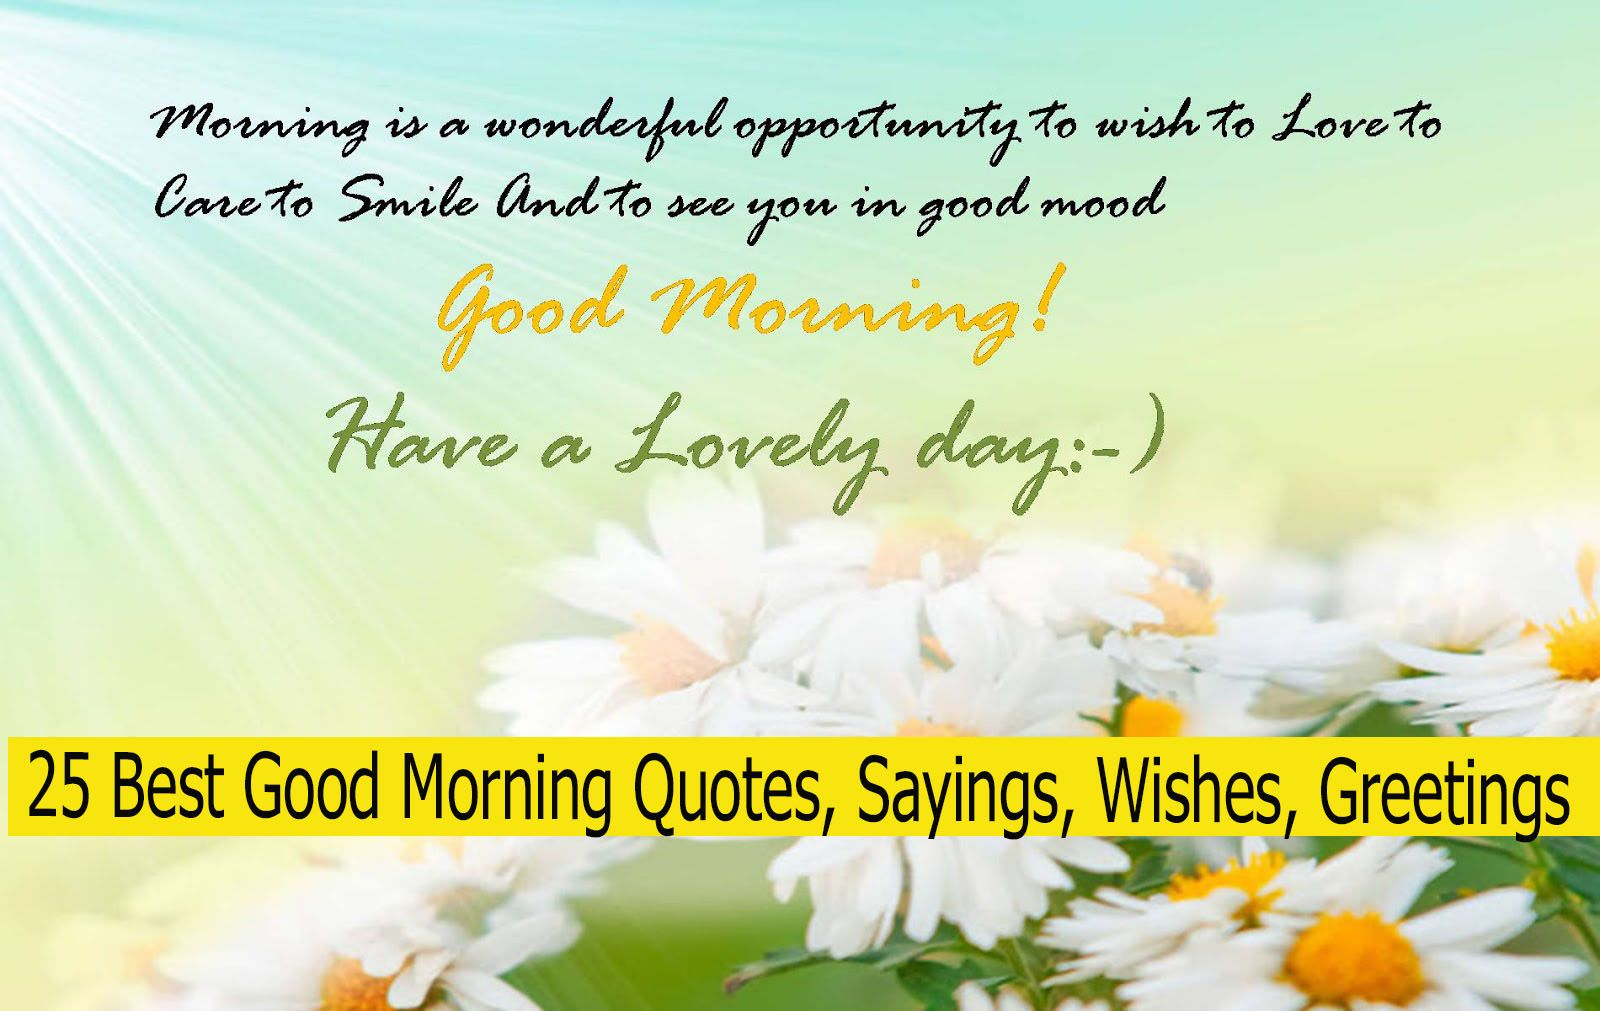 Good morning cards for my love google search good morning good morning cards for my love google search kristyandbryce Gallery